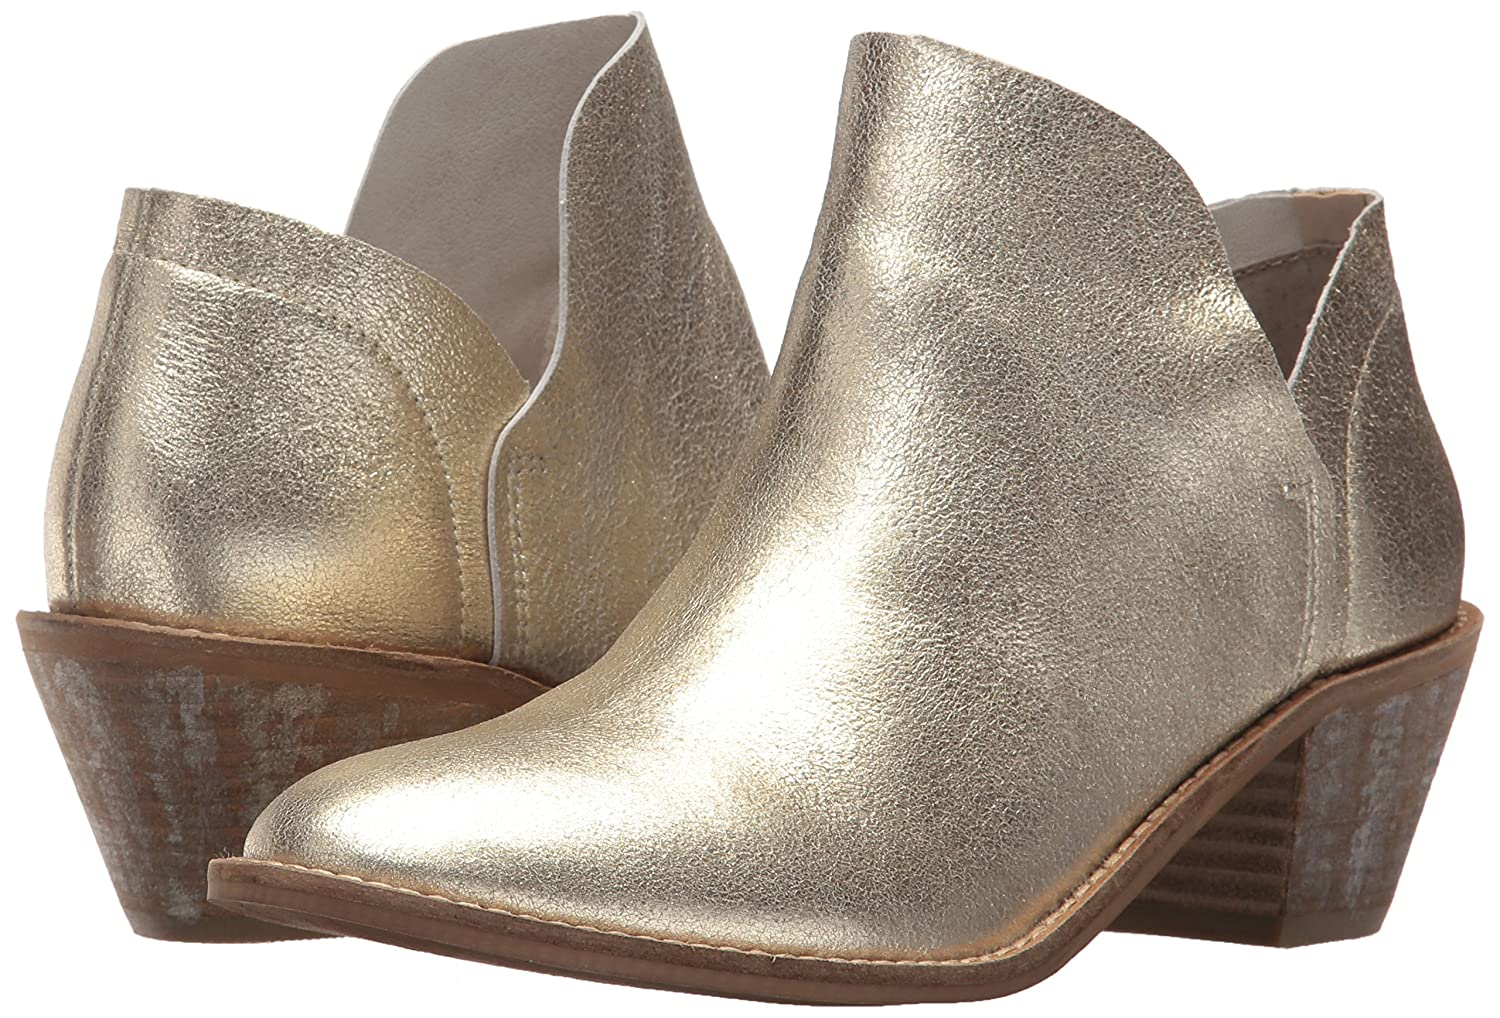 Kelsi Dagger Brooklyn Women's Kenmare Ankle Boot B073455GKX 7 B(M) US|Platinum